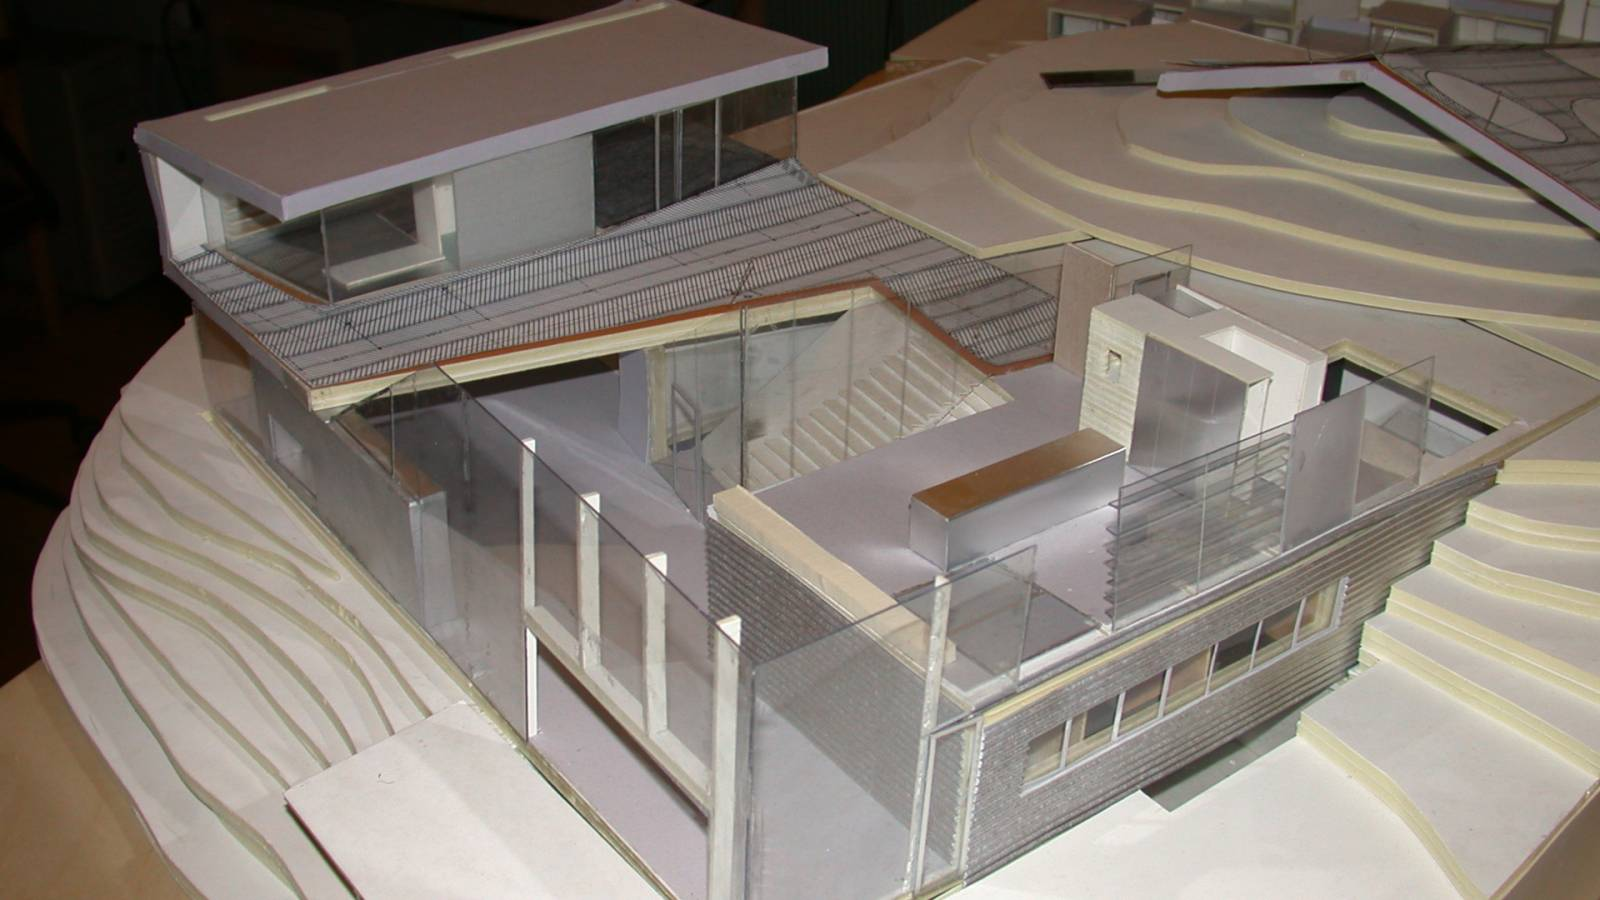 WORKING MODEL - V-House - SPOL Architects